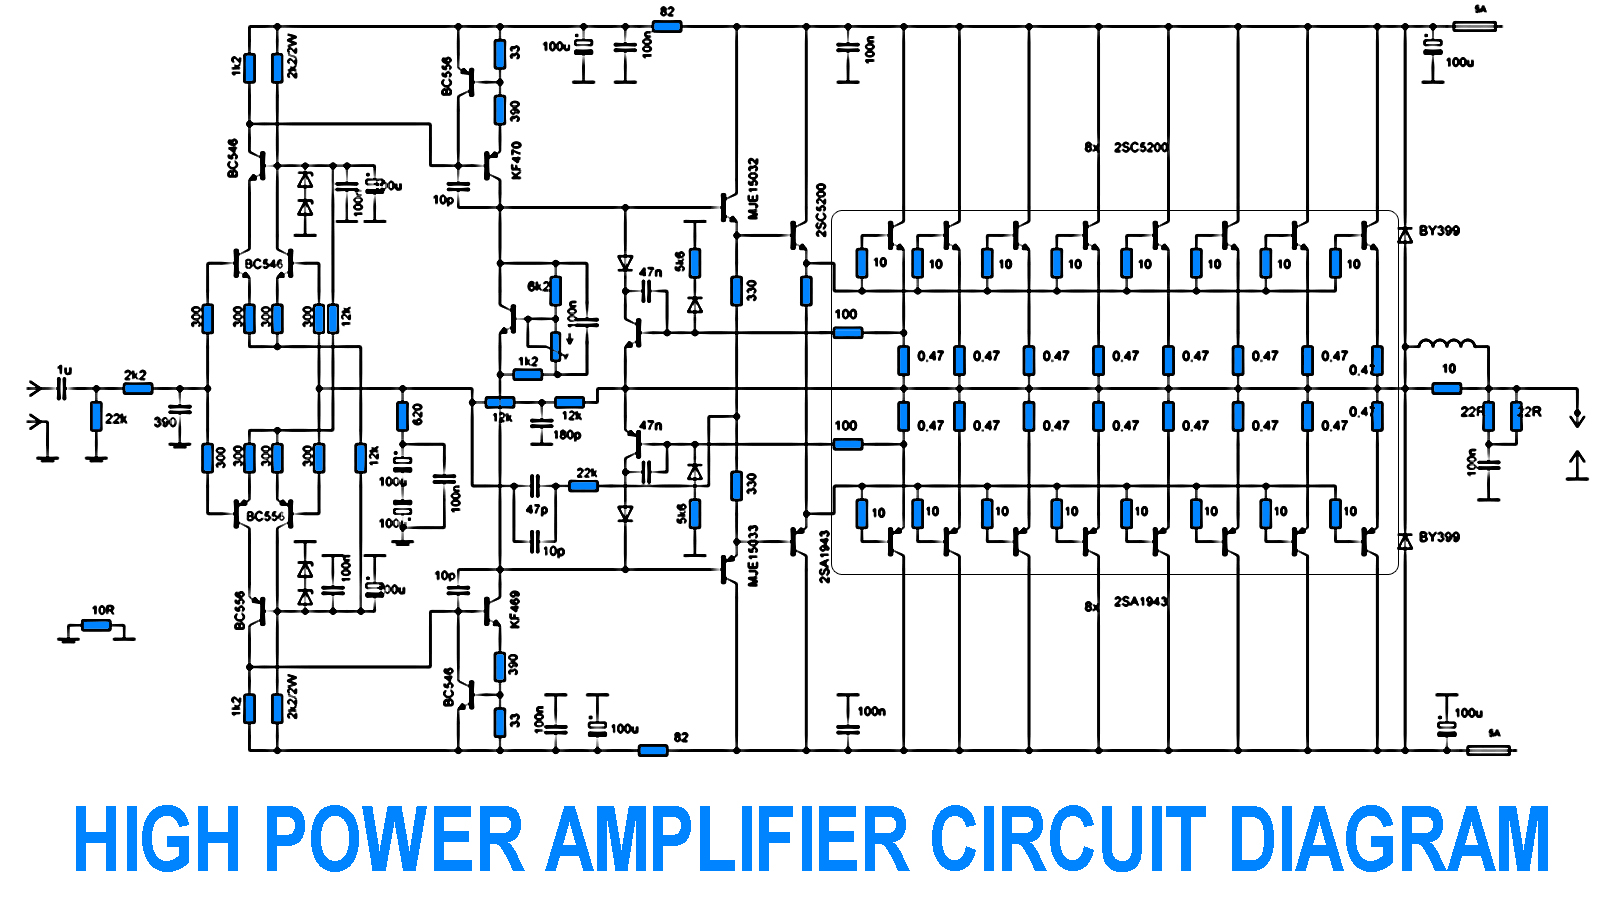 w power amplifier with sc    sa   electronic circuit  w power amplifier   sc    sa circuit diagram